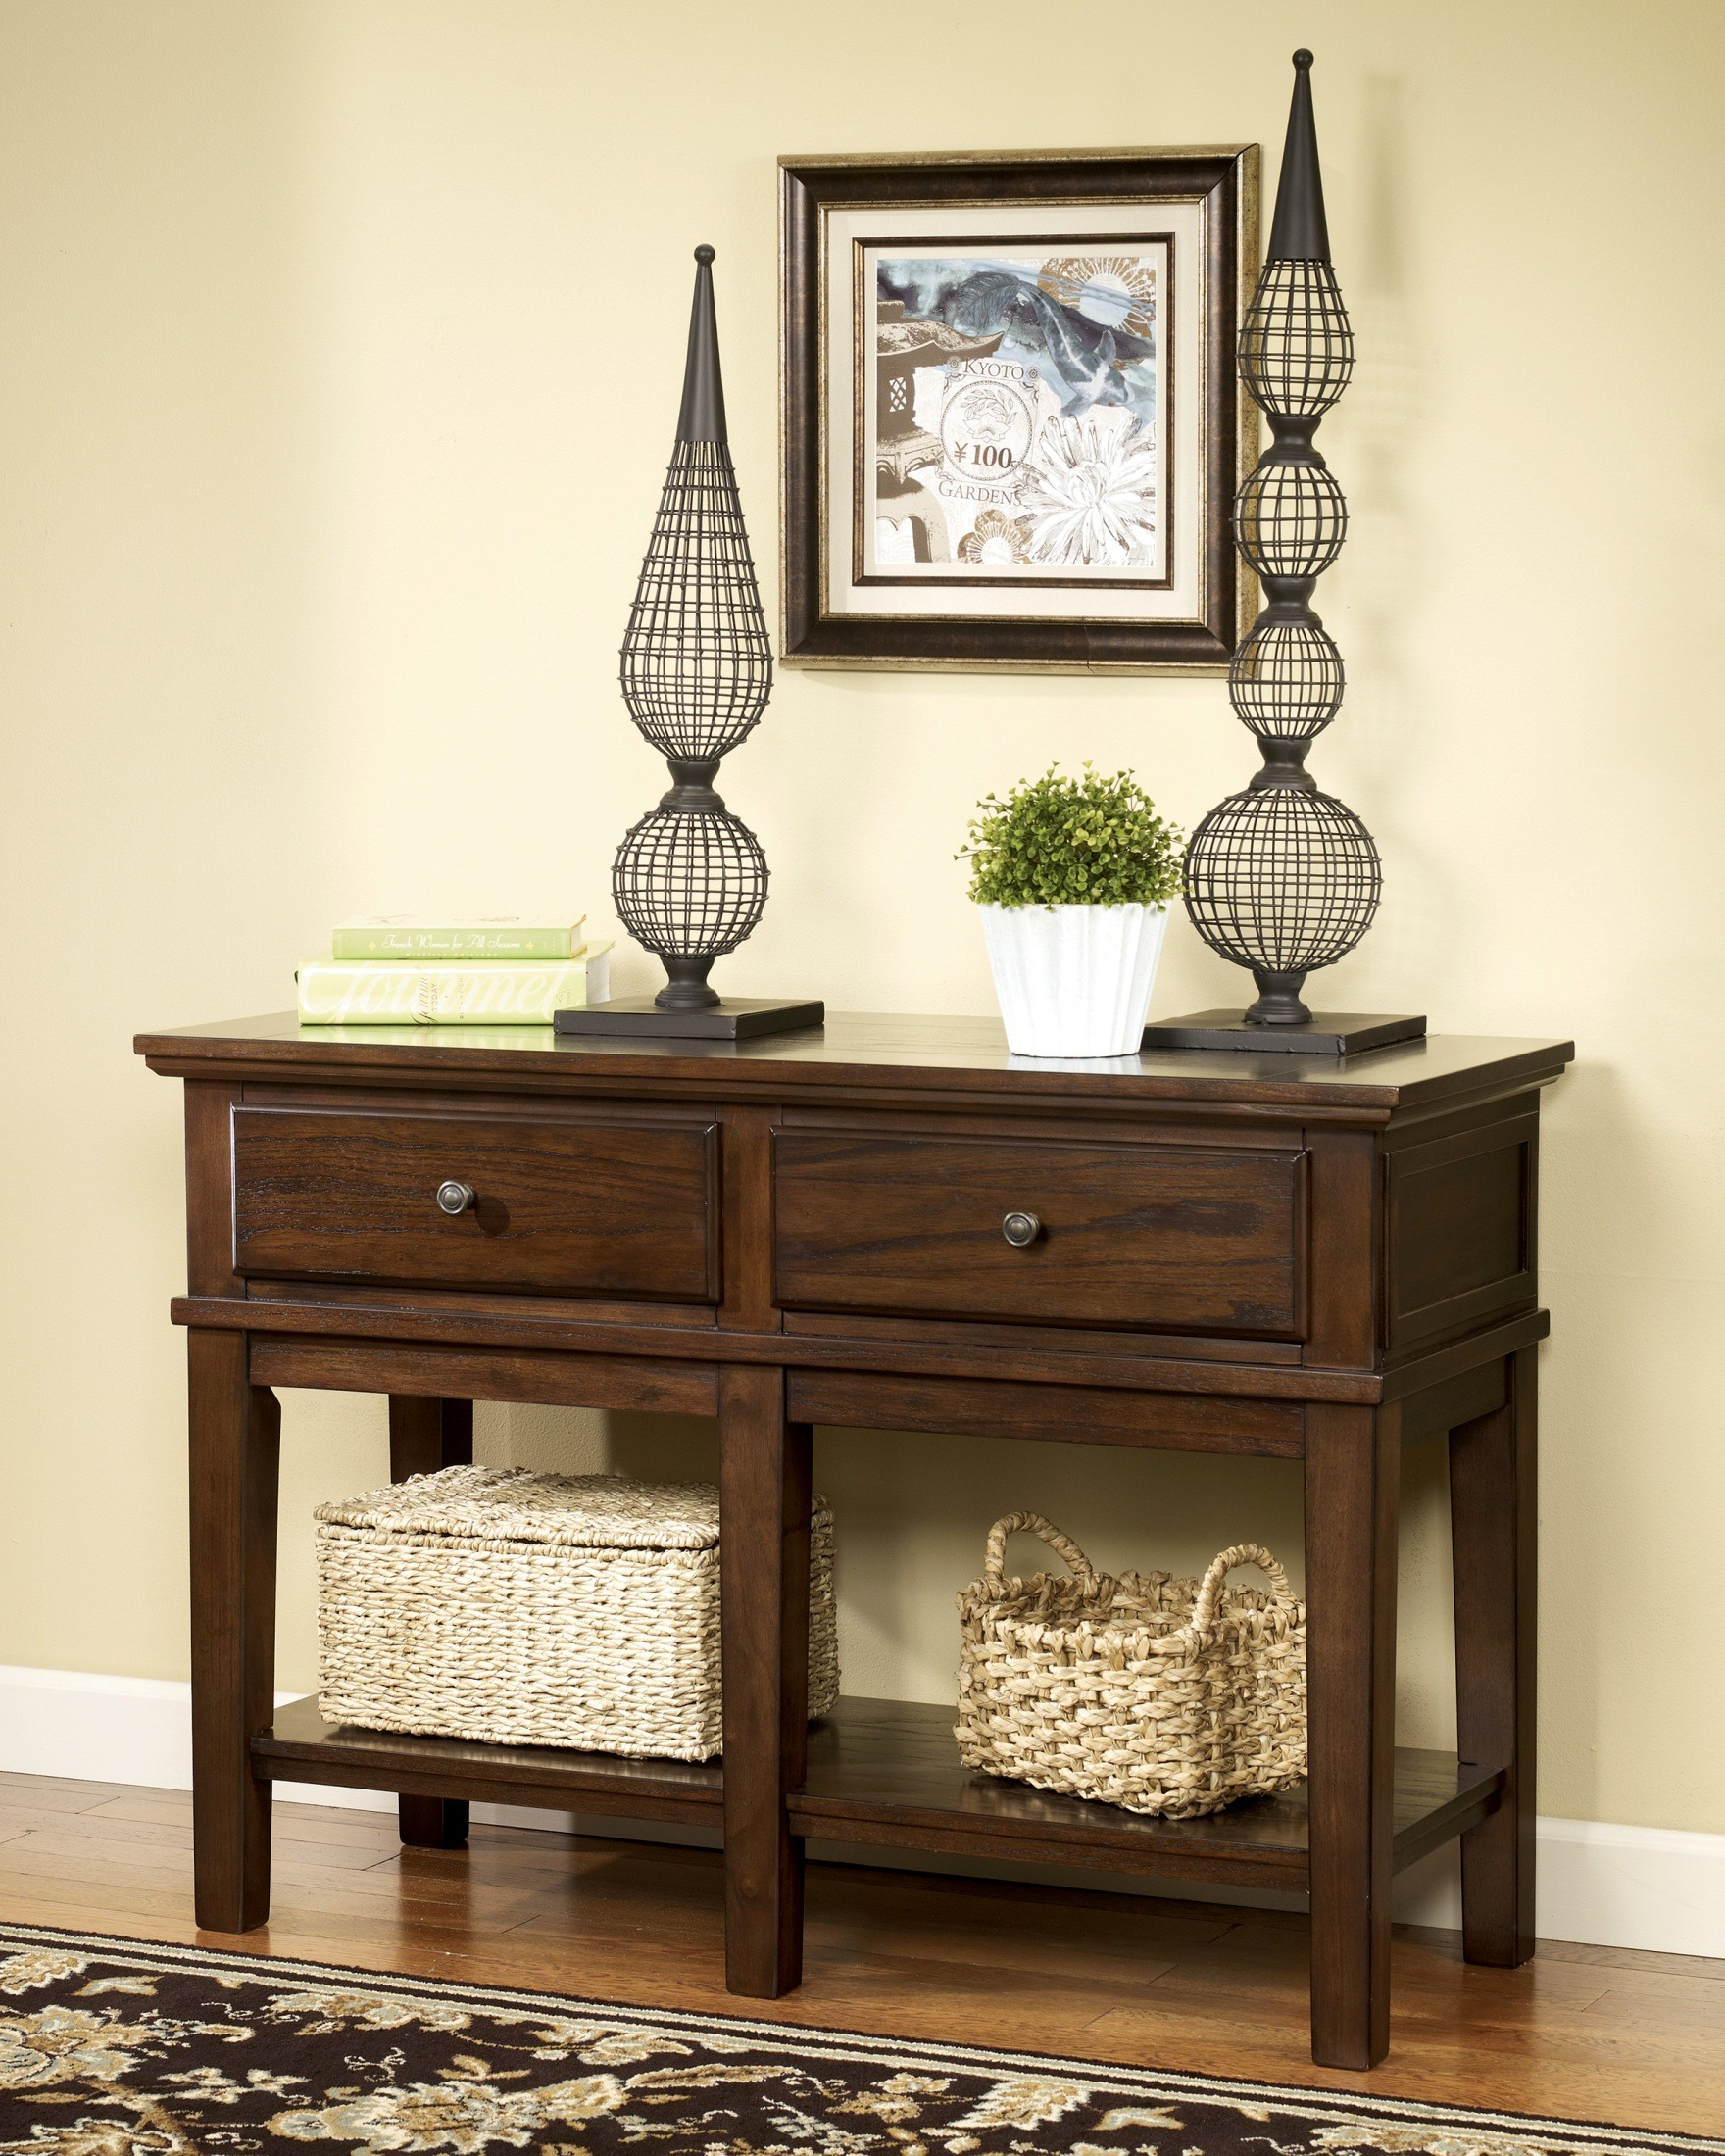 Gately Console Sofa Table From Ashley (T845-4)